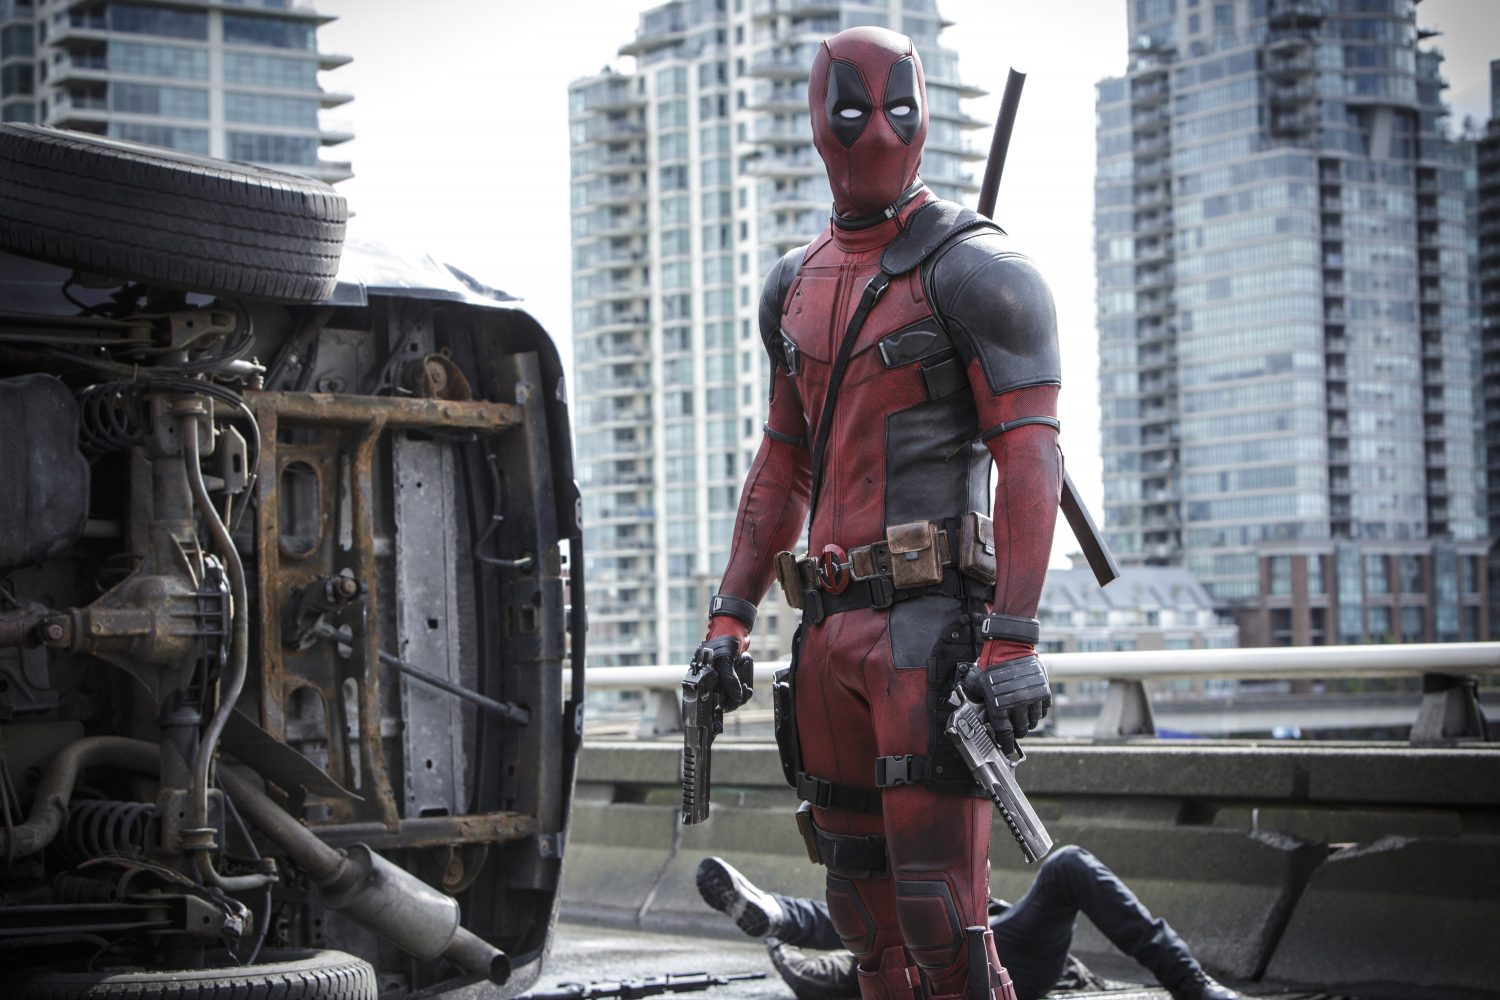 DEADPOOL%0A%0ARyan+Reynolds+is+Marvel+Comics%E2%80%99+most+unconventional+anti-hero%2C+DEADPOOL.%0A%0APhoto+Credit%3A+Joe+Lederer%0A%0ATM+%26amp%3B+%C2%A9+2015+Marvel+%26amp%3B+Subs.+%C2%A0TM+and+%C2%A9+2015+Twentieth+Century+Fox+Film+Corporation.+%C2%A0All+rights+reserved.+%C2%A0Not+for+sale+or+duplication.